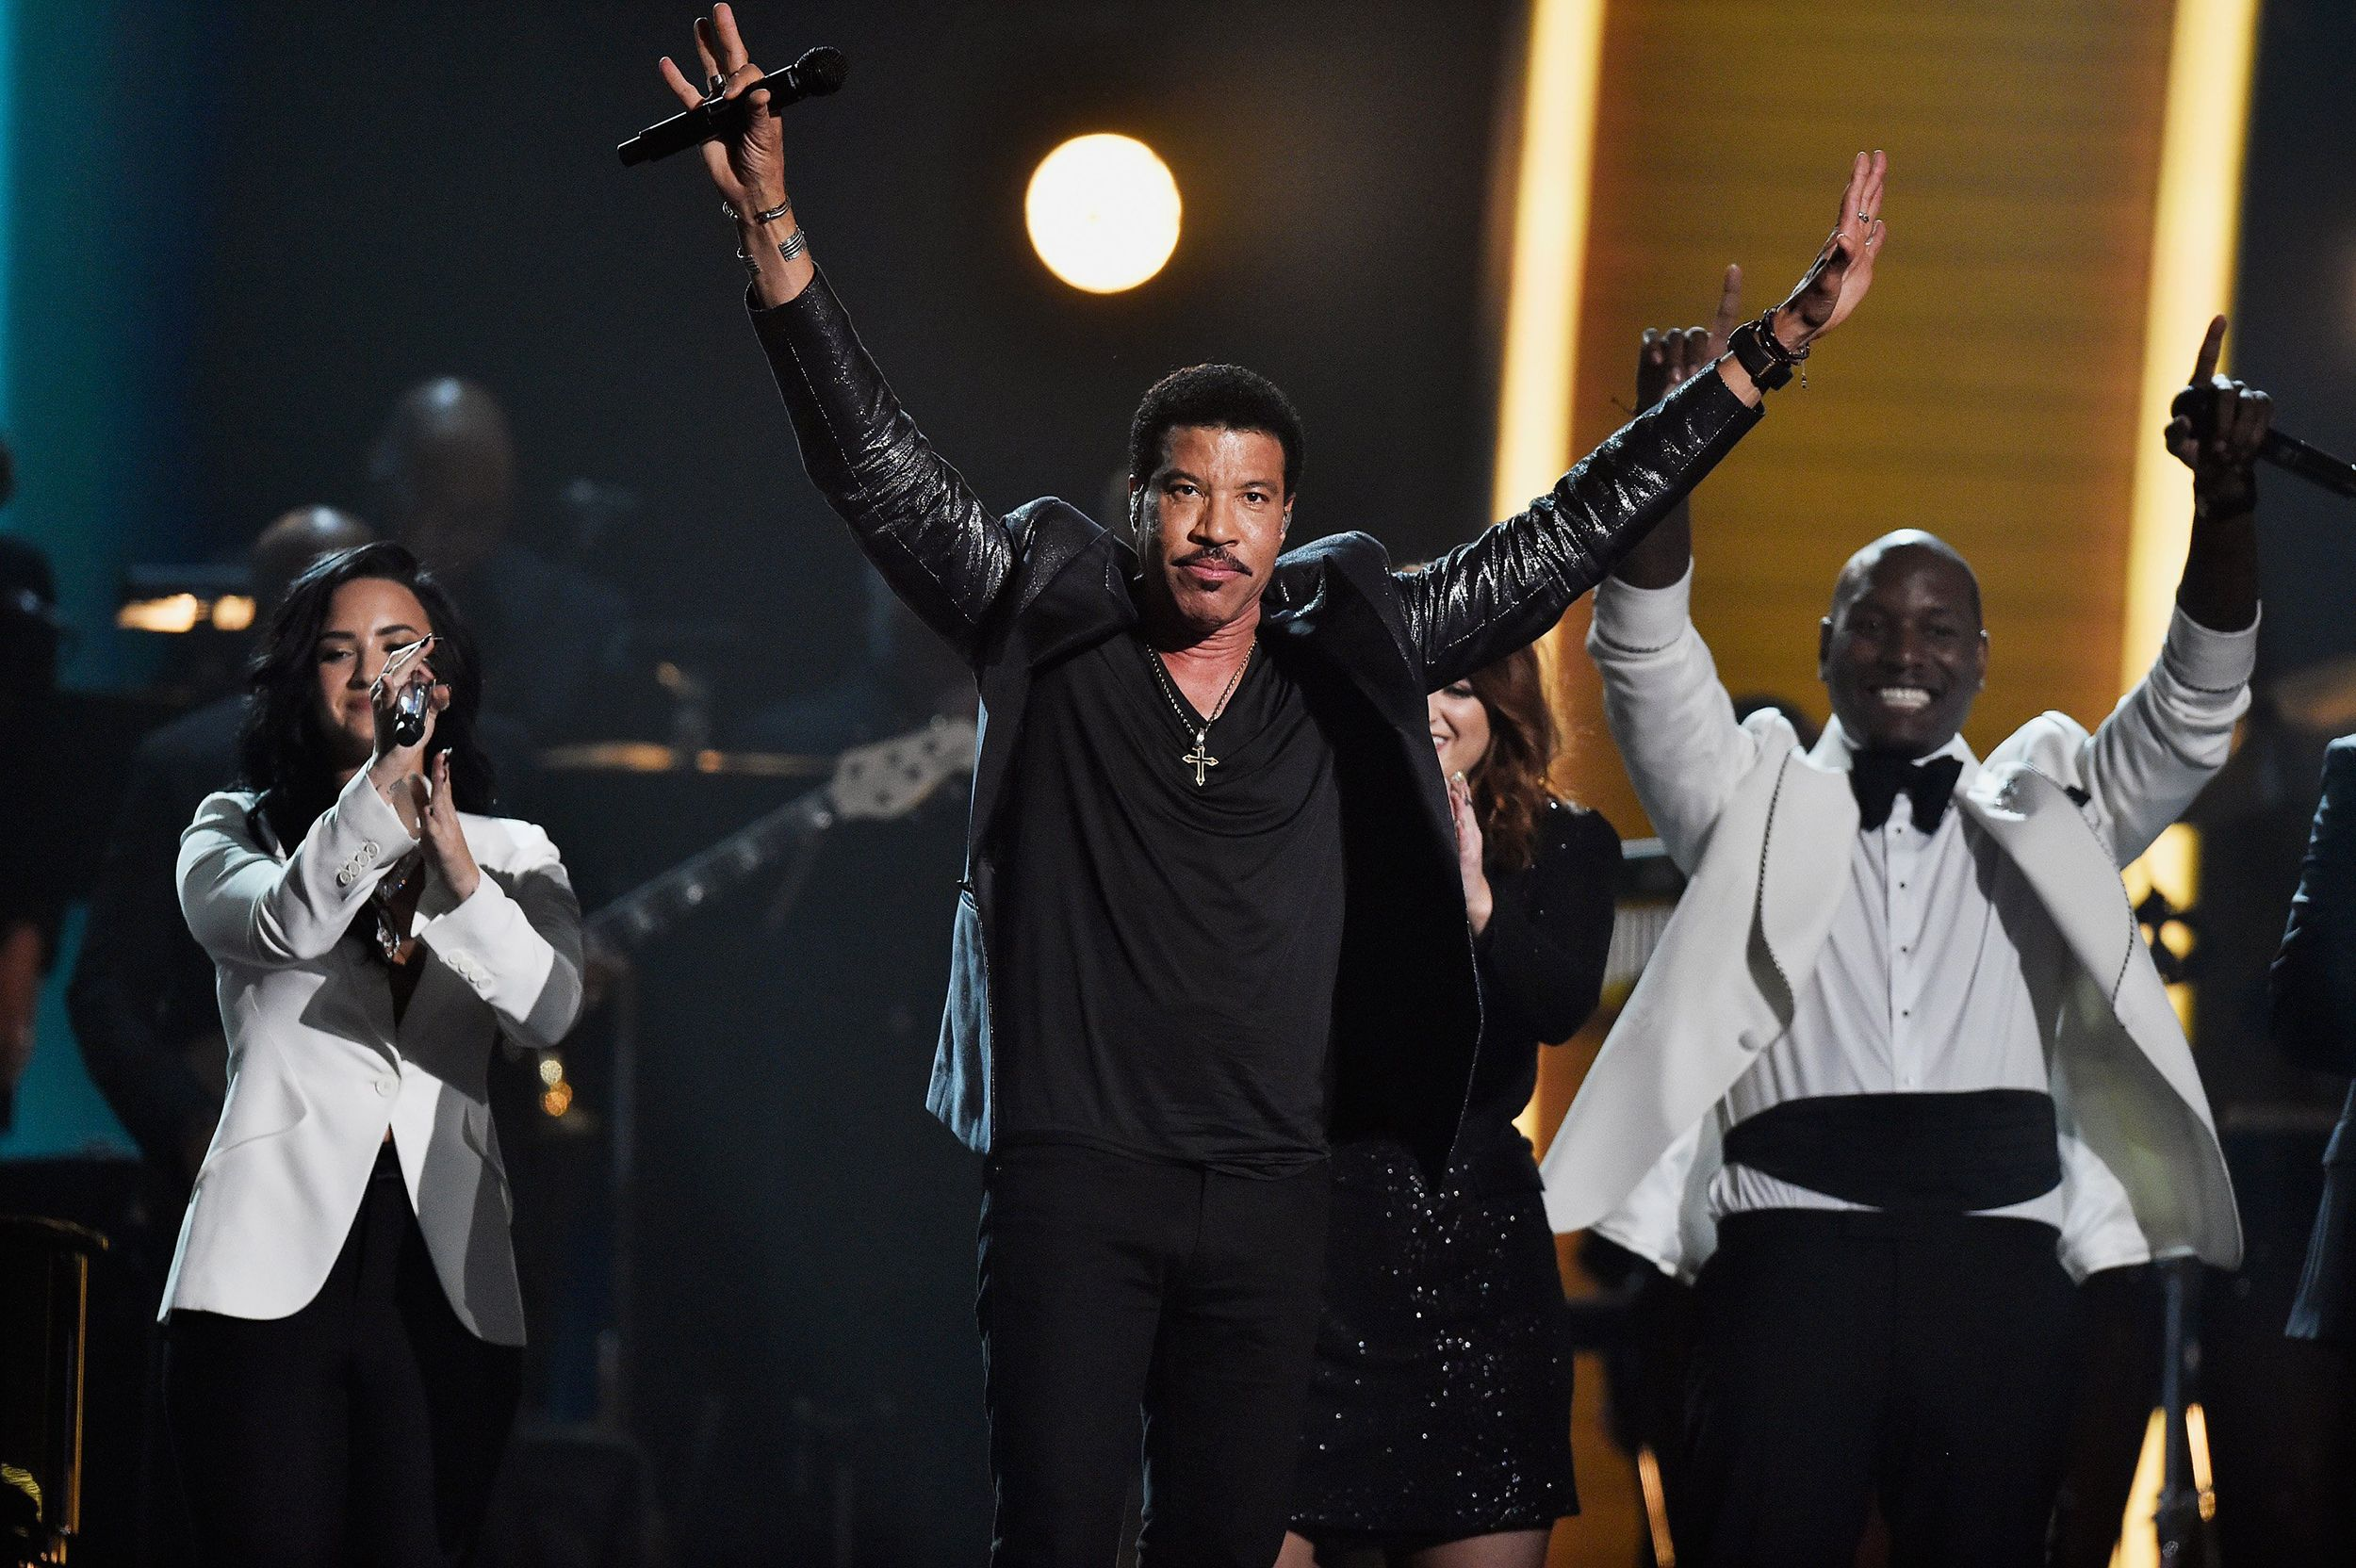 All Star Lionel Richie Tribute At Grammys Features John Legend Meghan Trainor Meghan Trainor Lionel Richie Grammy